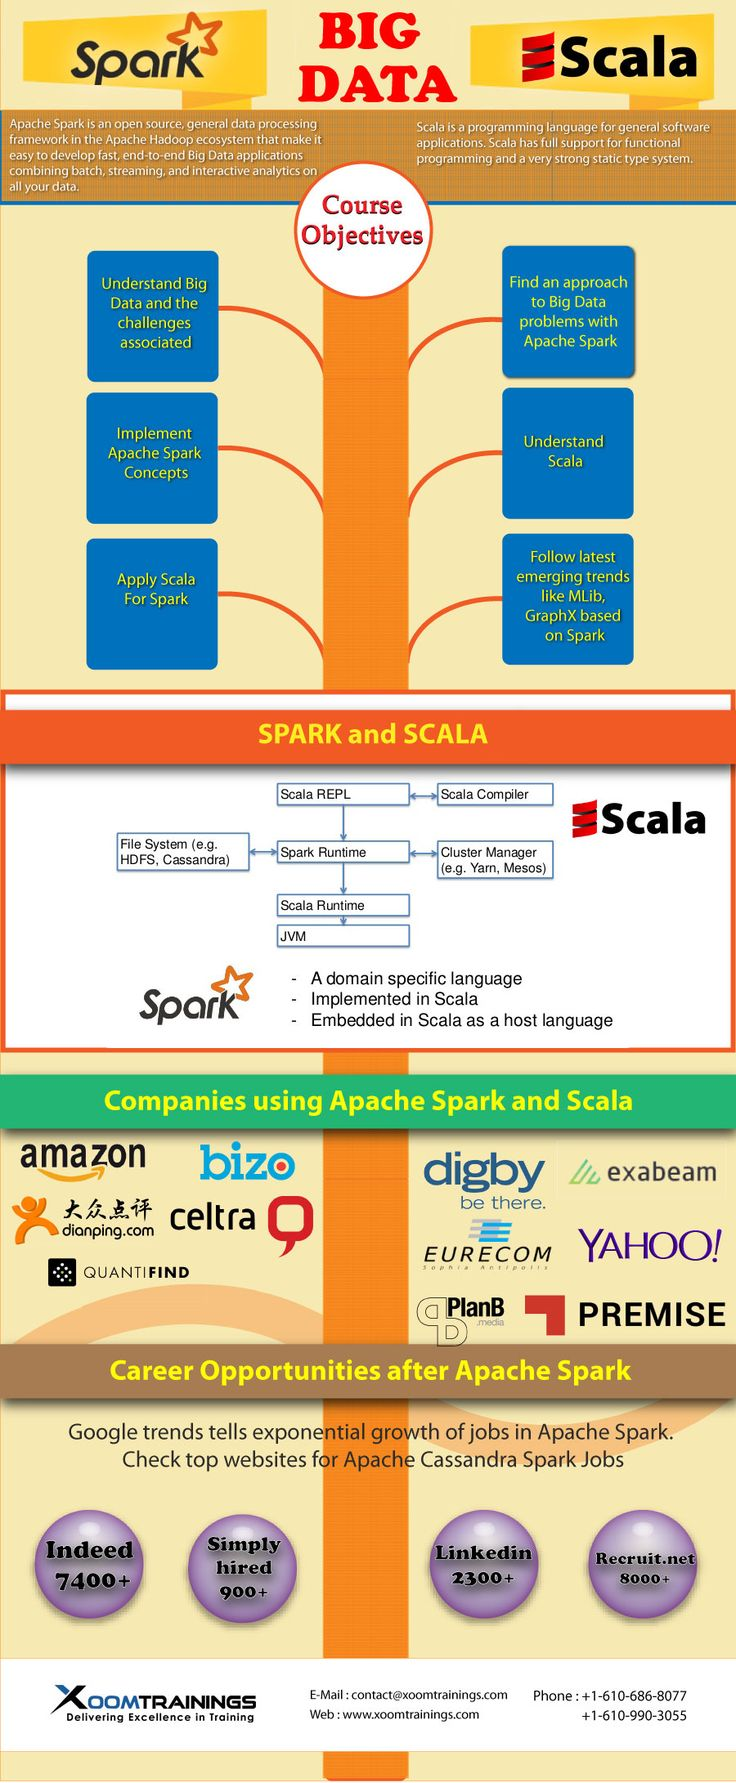 Apache Spark & Scala Online Training helps you learn how to run Spark on Scale, with live tutorials.